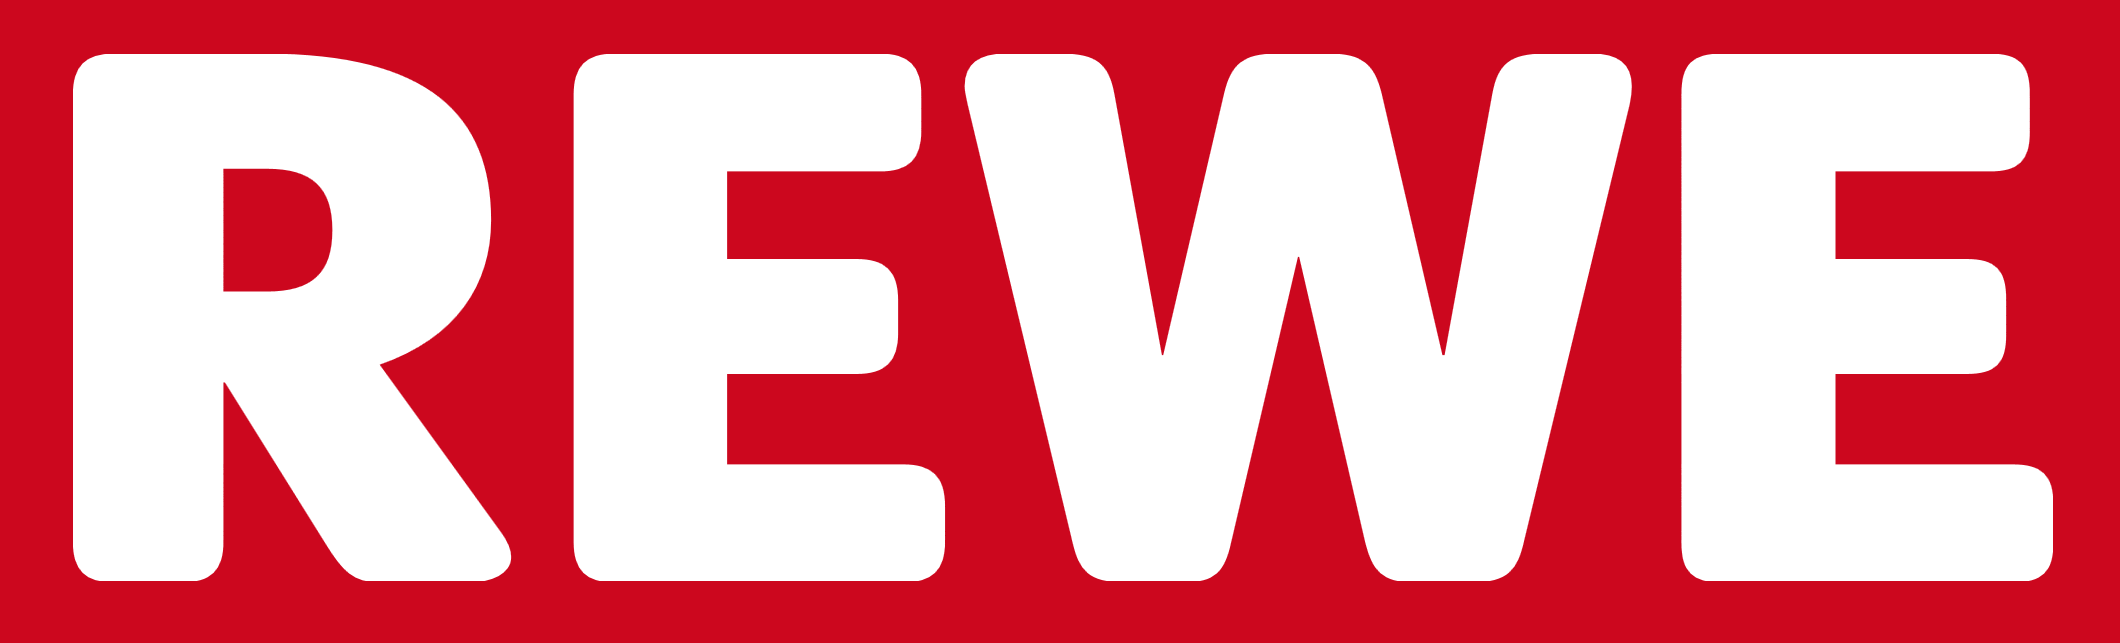 9560 Rewe Logo Download on Food Post